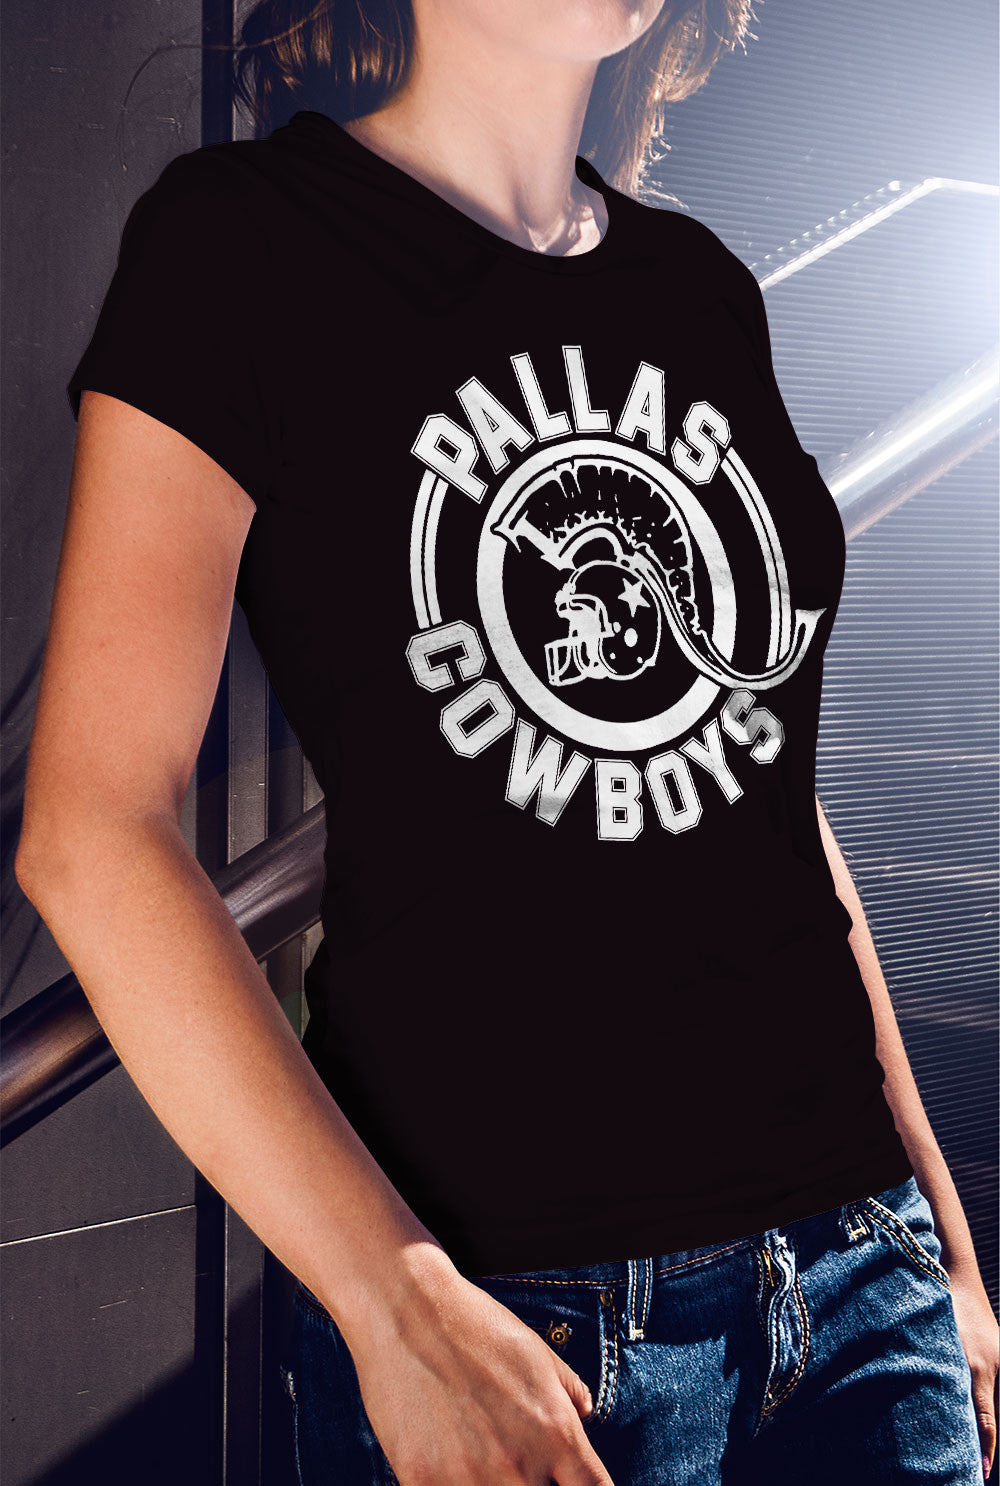 Pallas Cowboys Women's fitted T-shirt<p> In Black, White, Light Blue, Red, Purple and Azalea Pink Custom T Shirt by Lets Get Shirty Dot Com